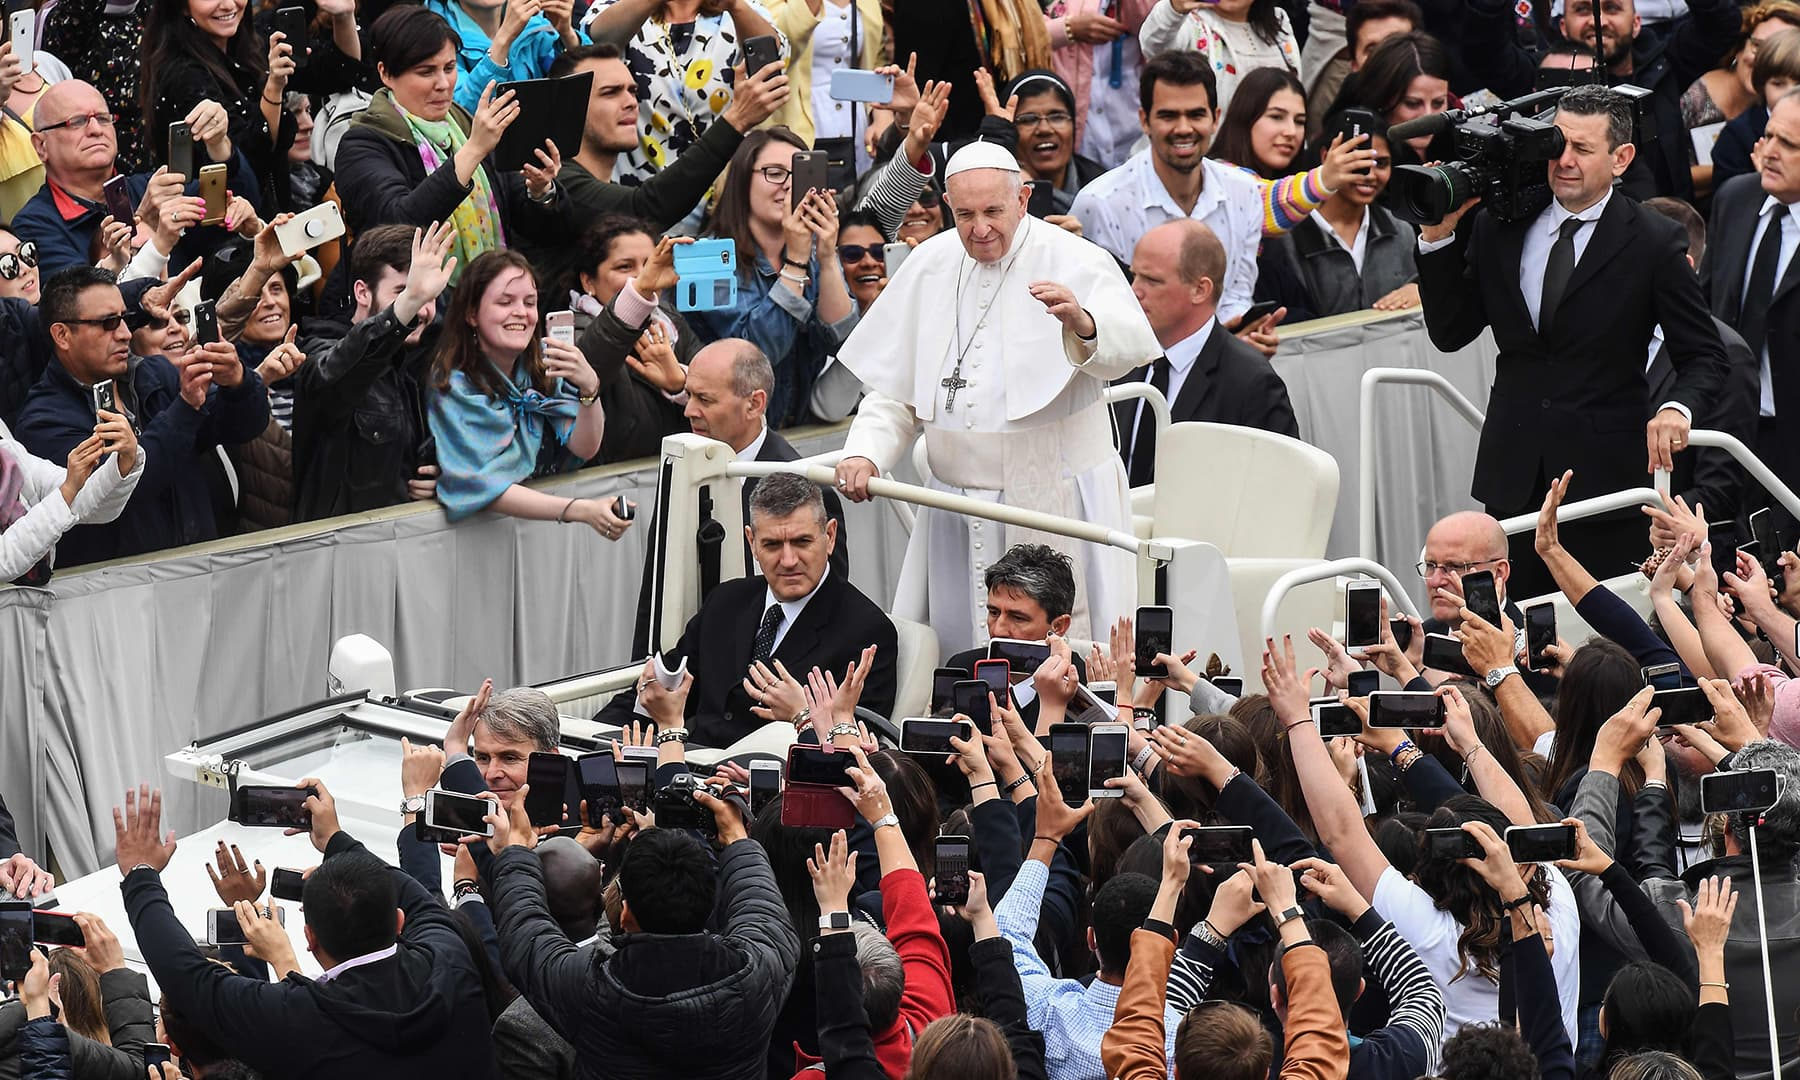 Pope Francis waves to worshipers from the popemobila car as he leaves at the end of the Easter Sunday mass. — AFP